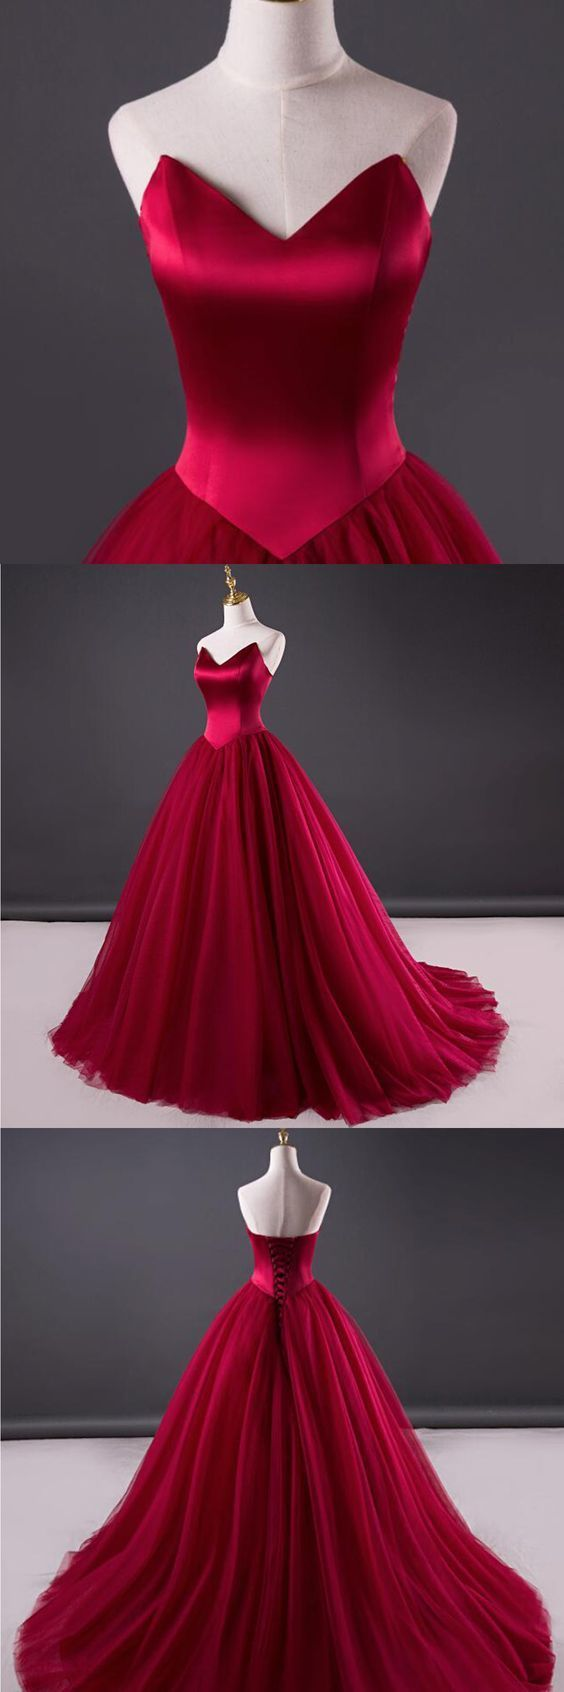 Wine Red Beautiful Sweet 16 Gown, Charming Tulle and Satin Prom Dress